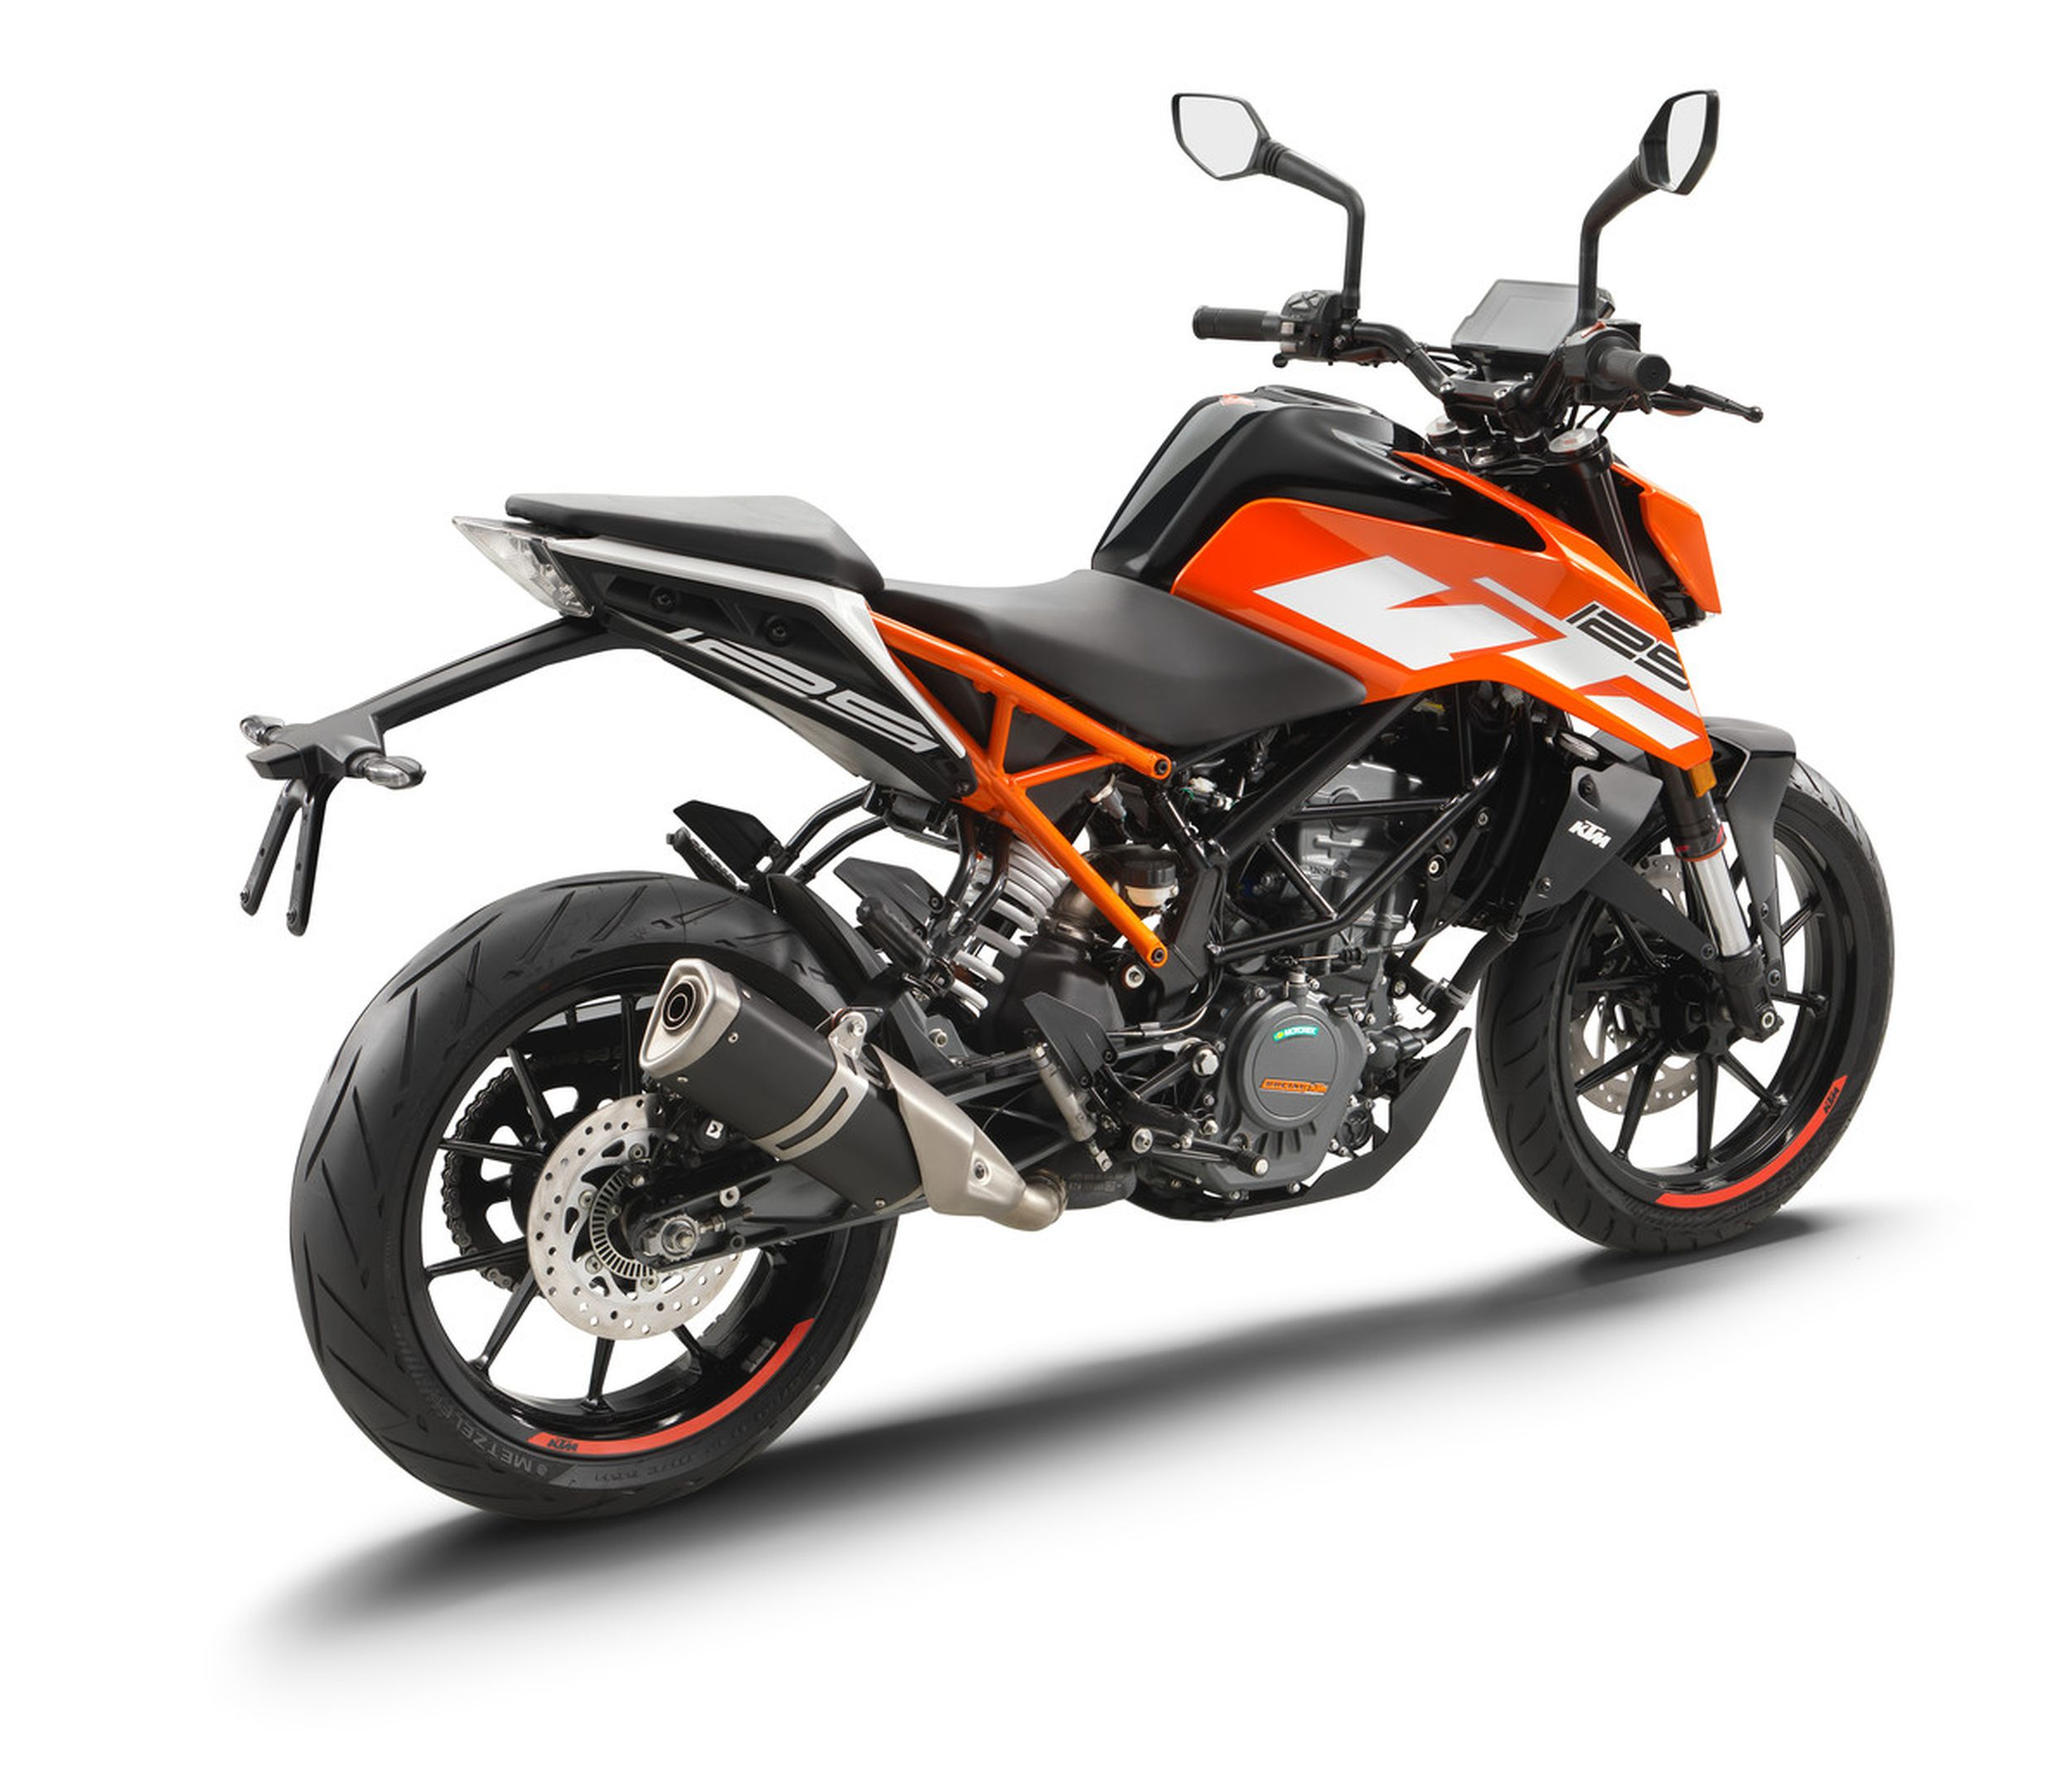 ktm 125 duke test gebrauchte bilder technische daten. Black Bedroom Furniture Sets. Home Design Ideas